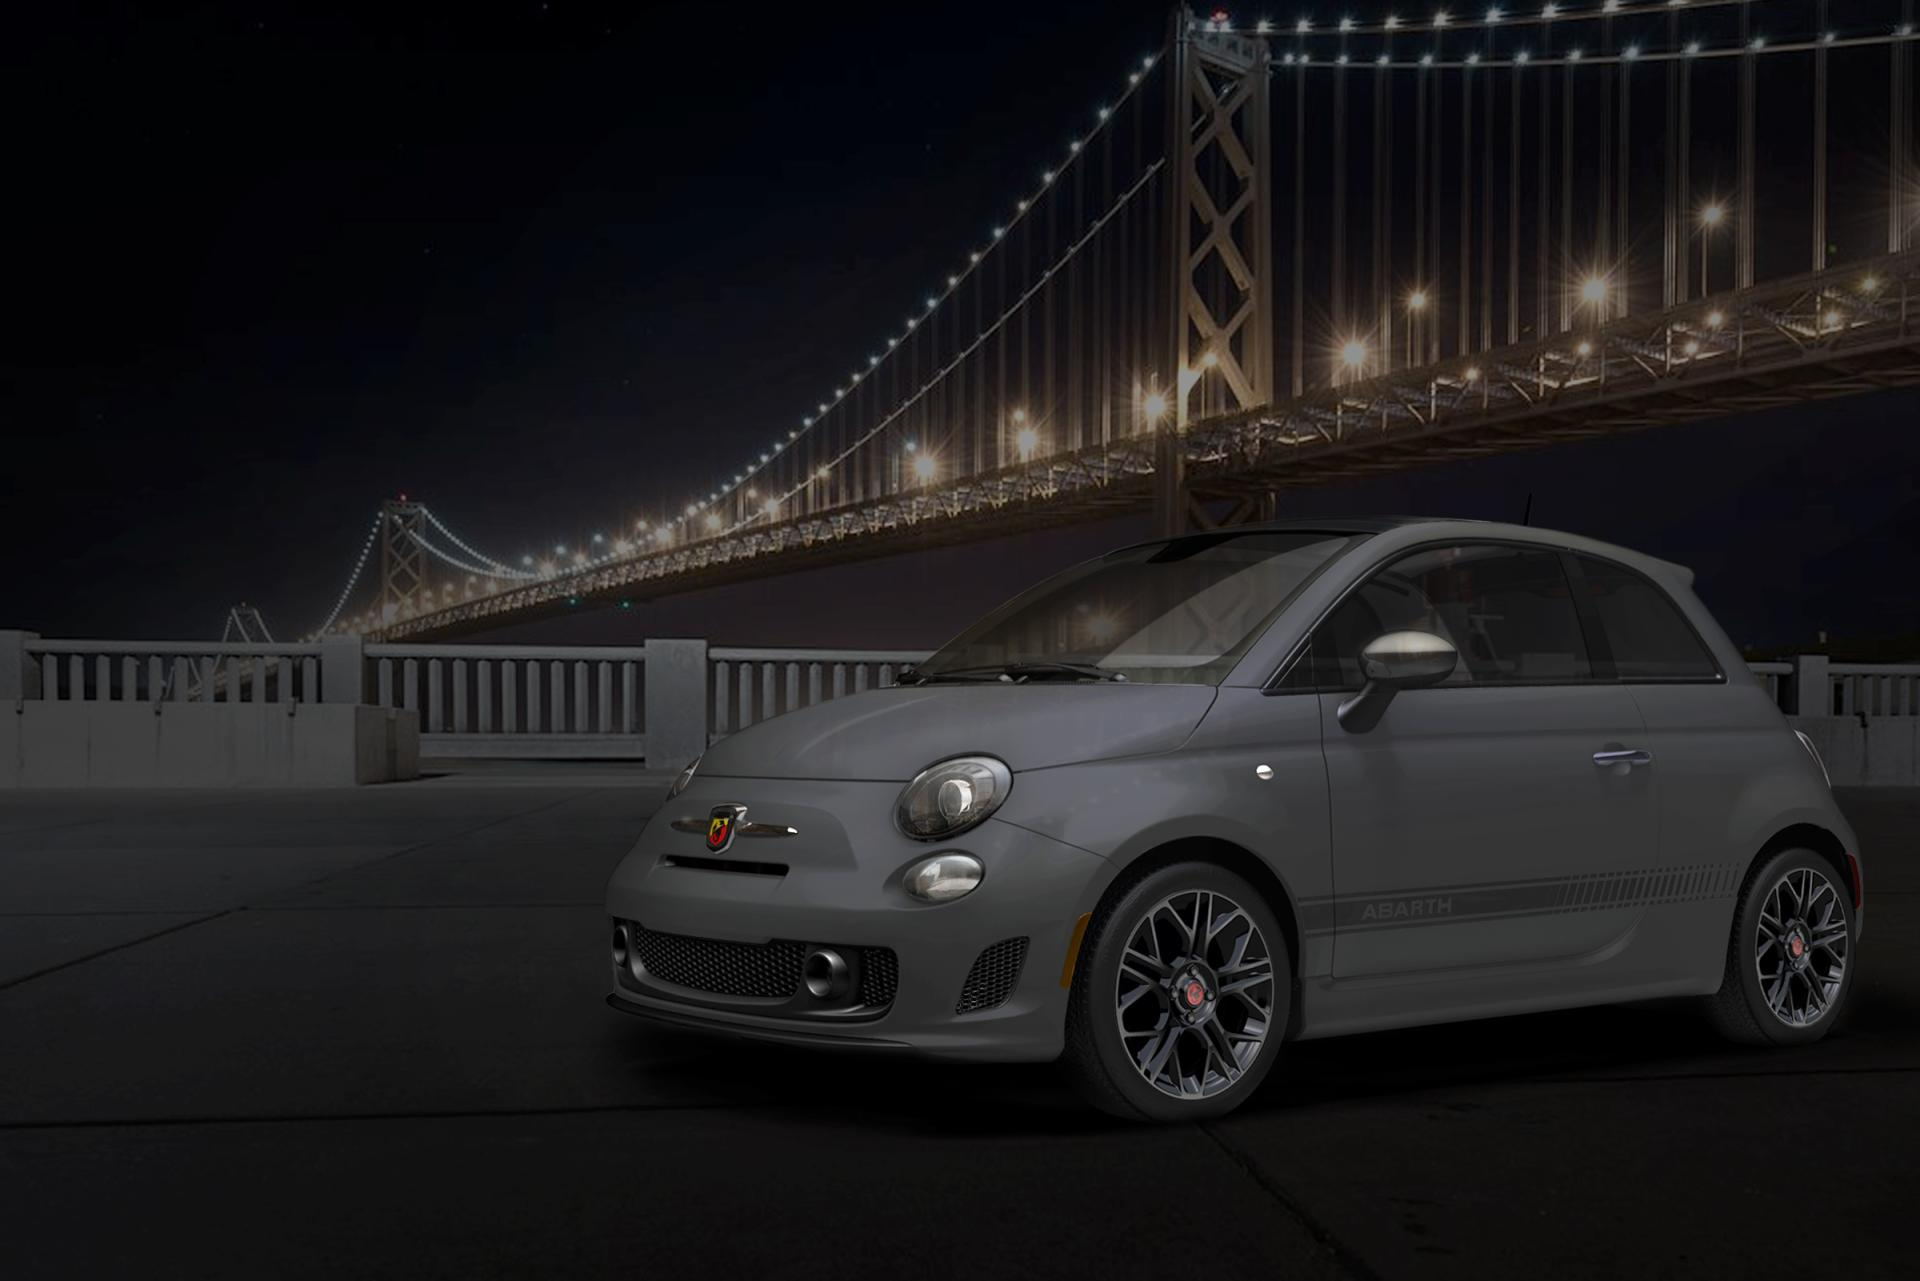 2013 Fiat 500 Abarth Tenebra Design Concept News and Information, Research,  and Pricing